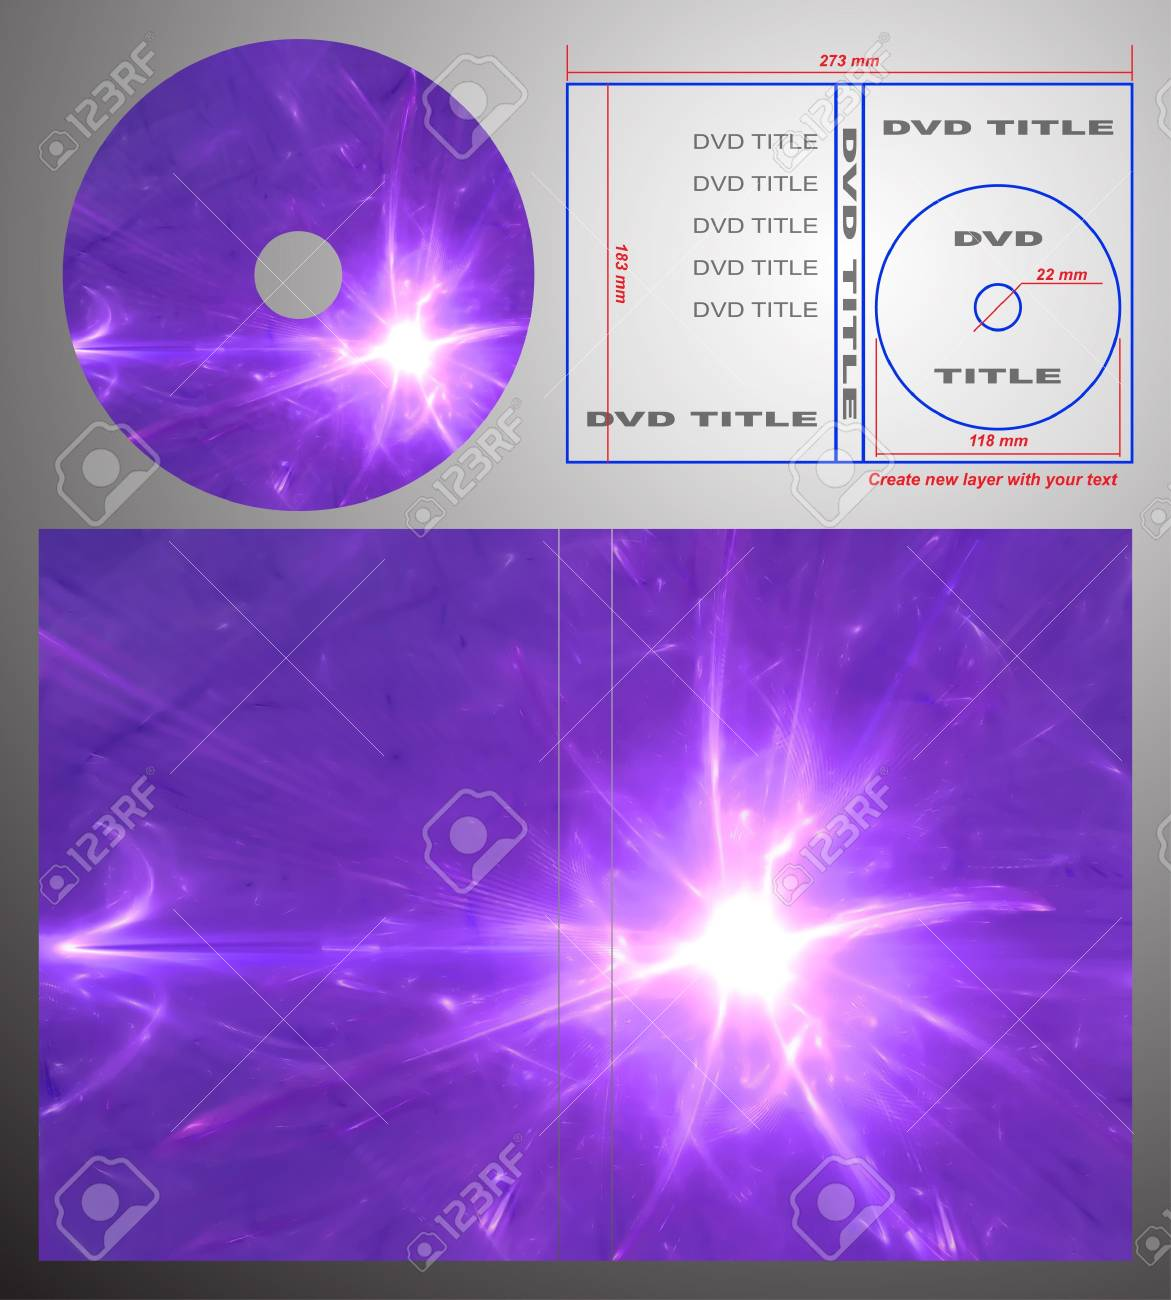 Abstract design template for dvd label and box-cover. Based on rendering of 3d fractal graphics. For using create new layer with your text. Stock Photo - 5561732